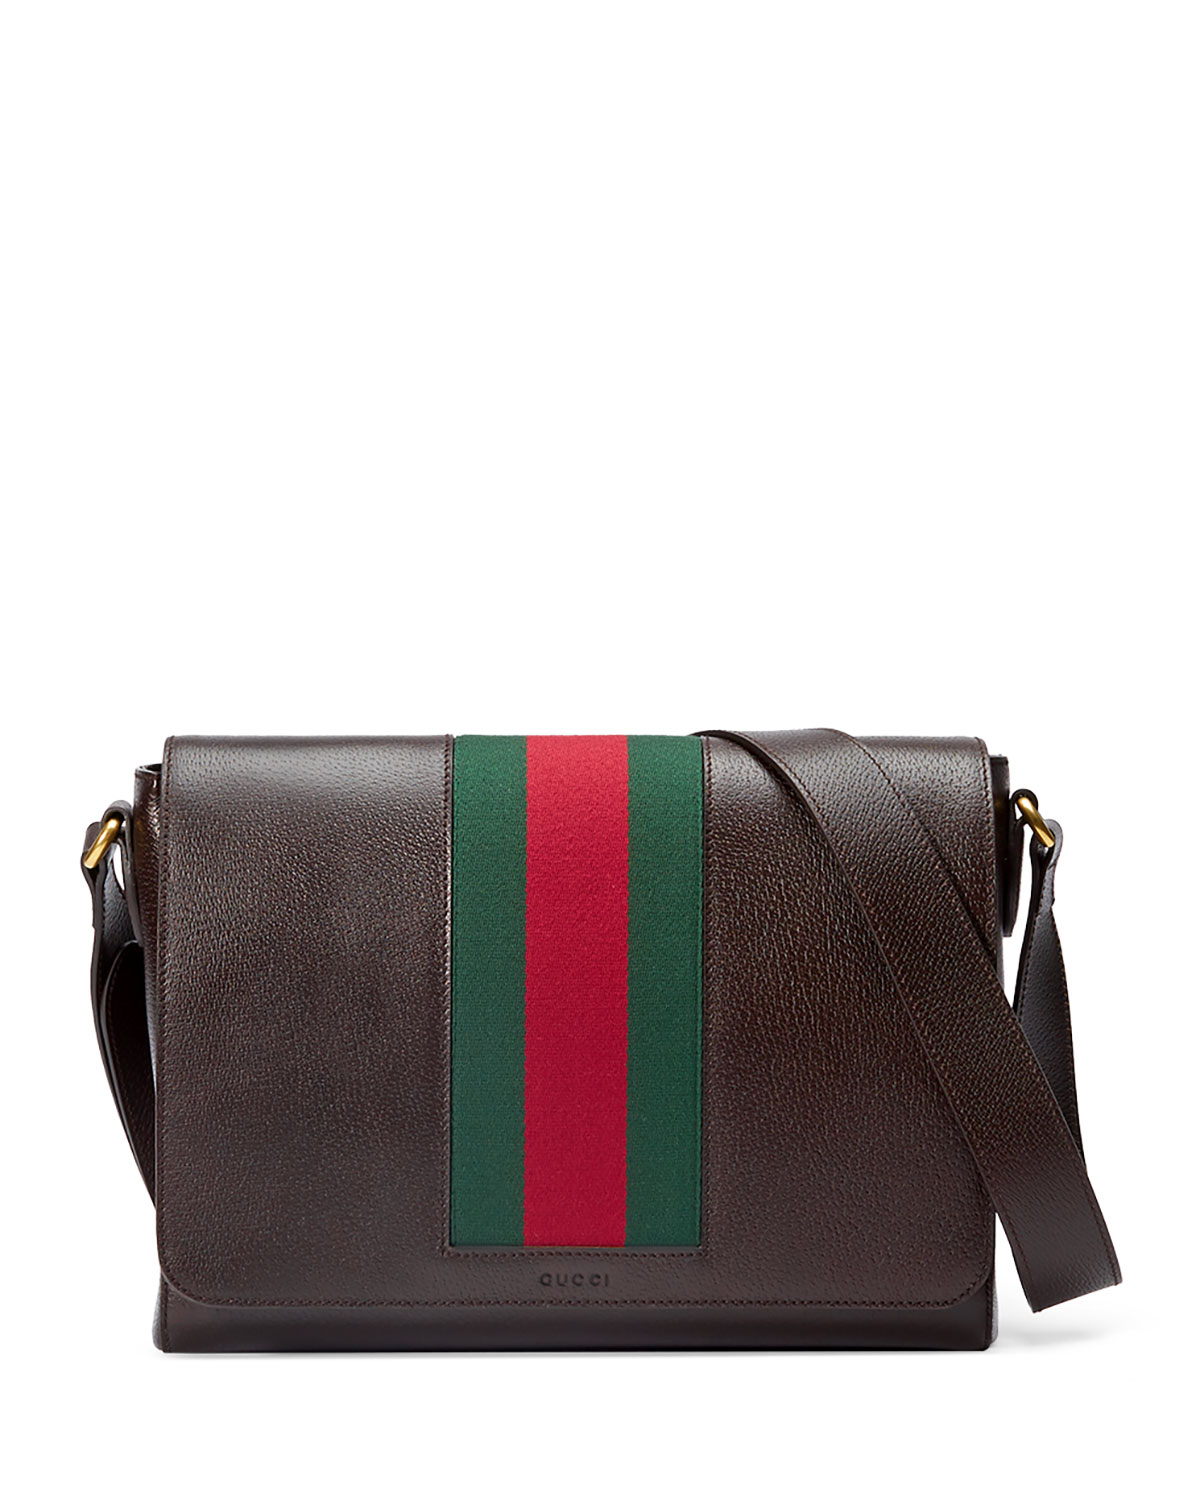 b43dbf56a6aa1 Gucci Textured Leather Messenger Bag w Web